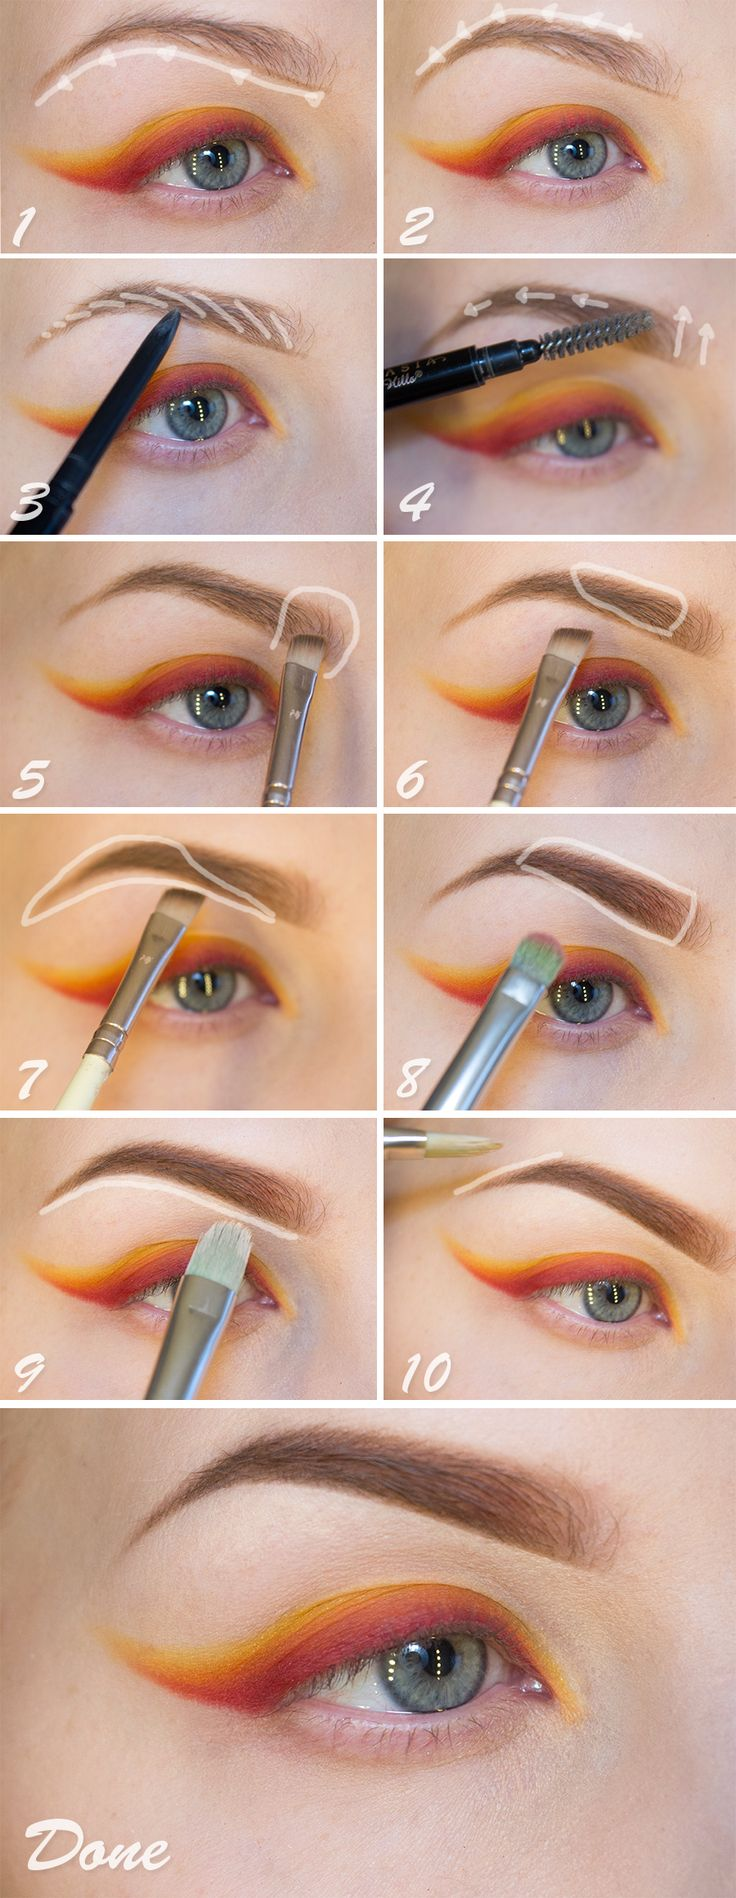 Eyebrow Styles: Fade Brow: The Eyebrow Trend That's Sweeping Instagram